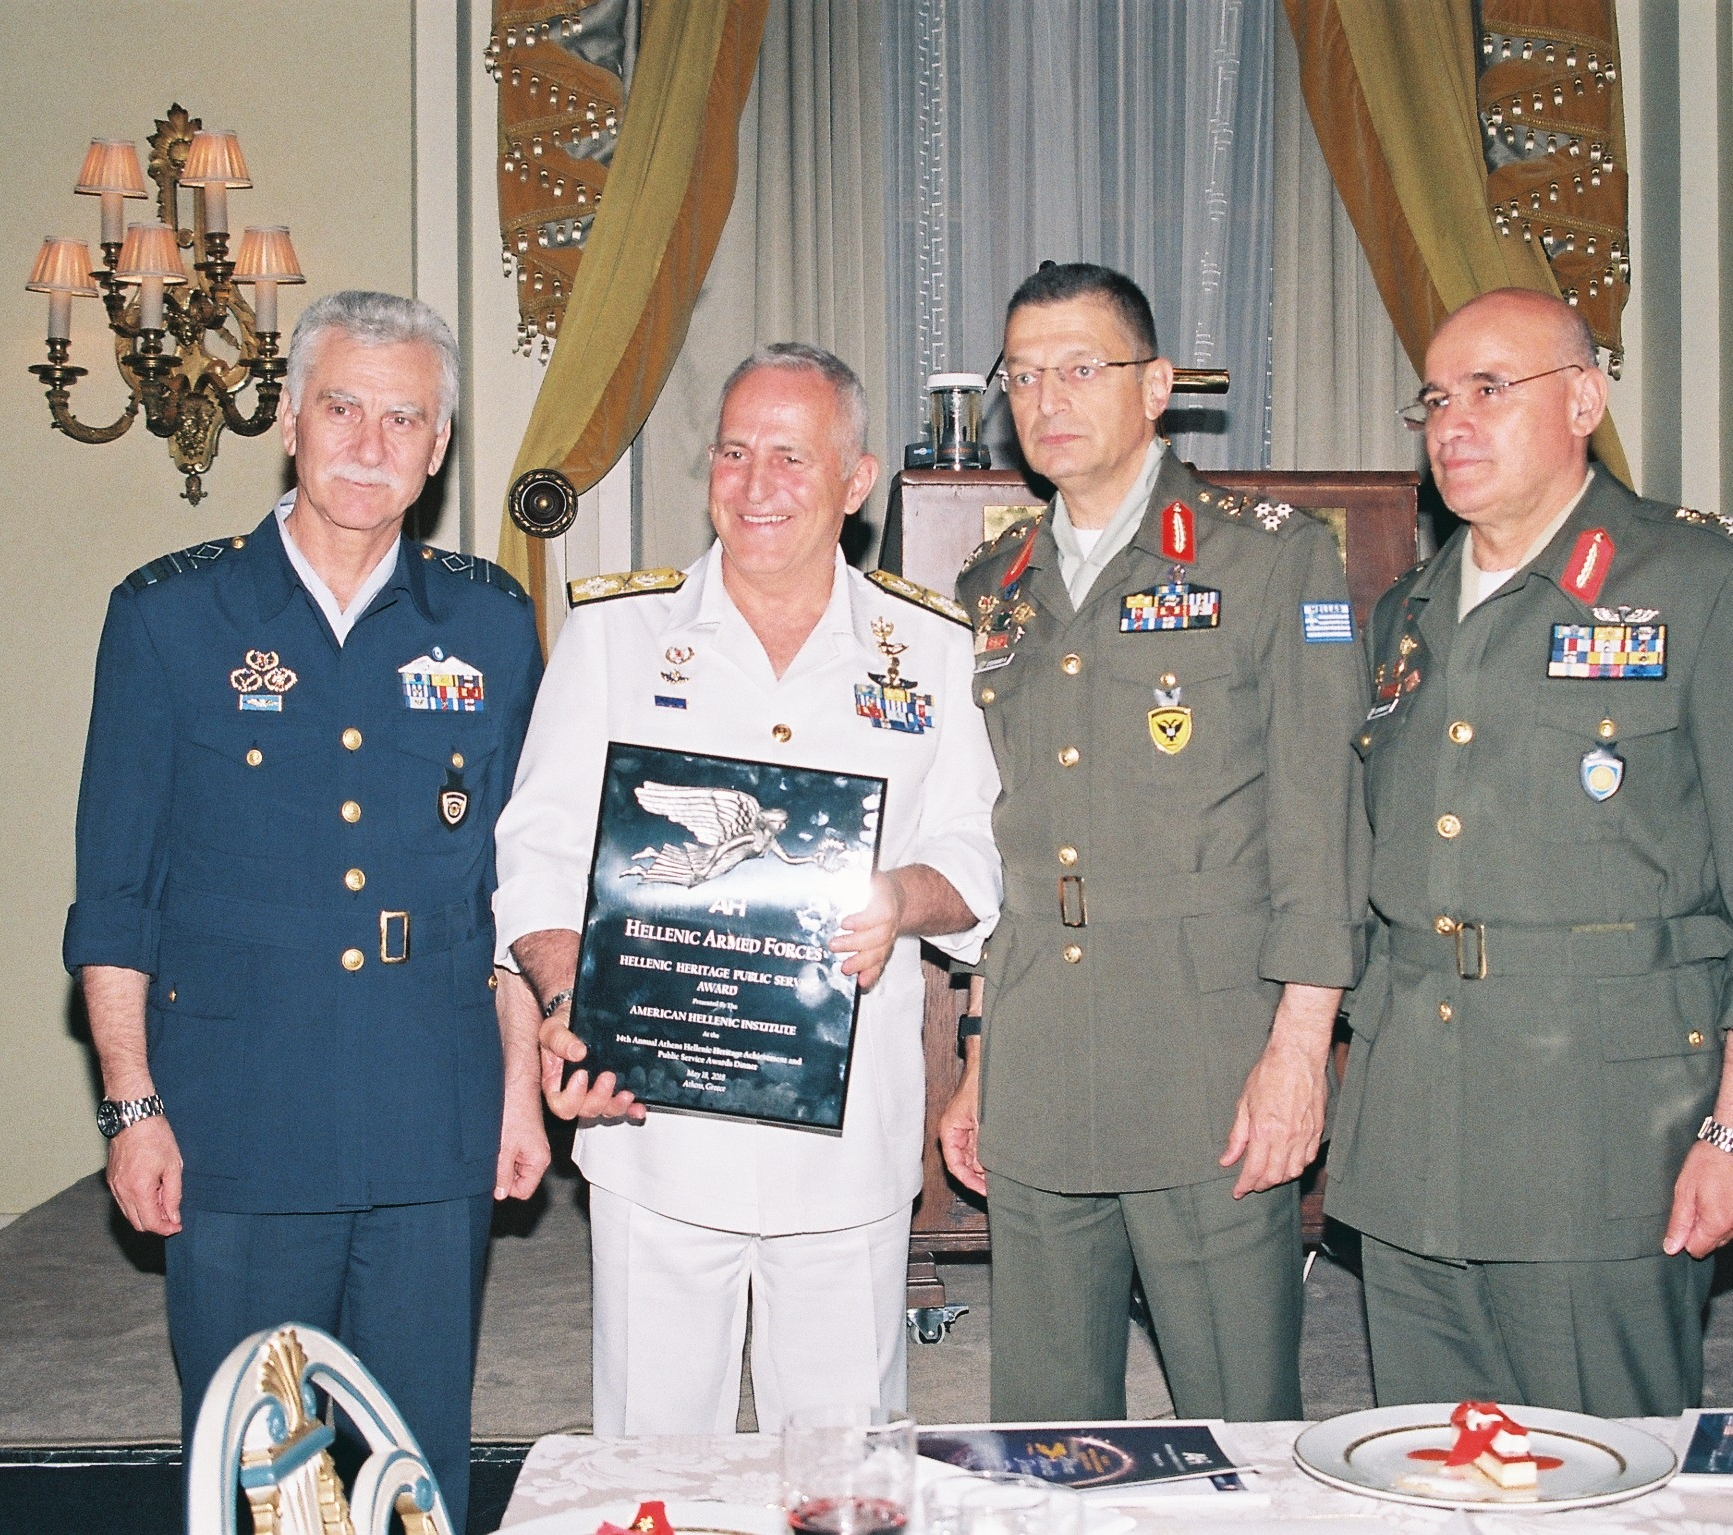 Lieutenant General Christos Christodoulou, Chief of the Hellenic Air Force General Staff; Admiral Apostolakis, Chief of the Hellenic Armed Forces; Lieutenant General Alkiviadis Stefanis, Chief of the Hellenic Army General Staff; and Lieutenant General Dimokritos Zervakis, Commander, Hellenic First Army - Larisa.